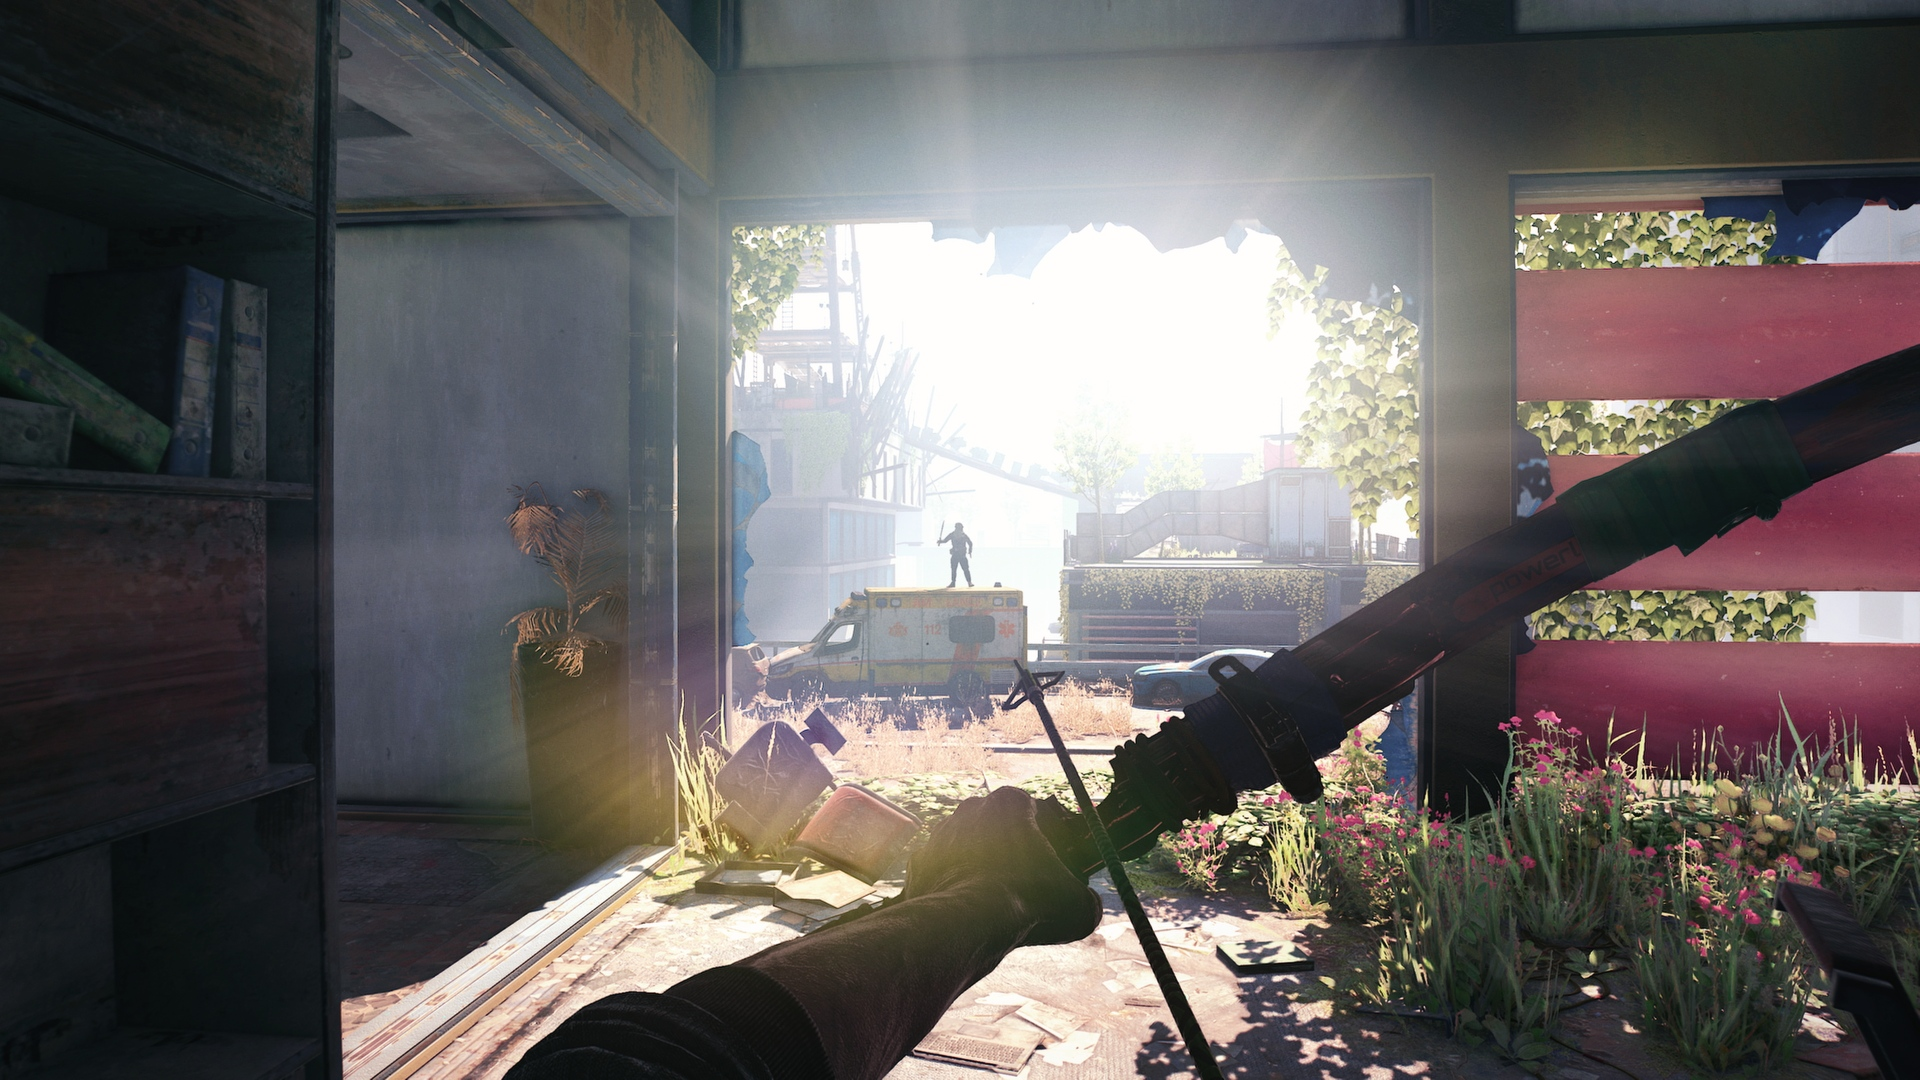 The protagonist wields a crossbow in Dying Light 2